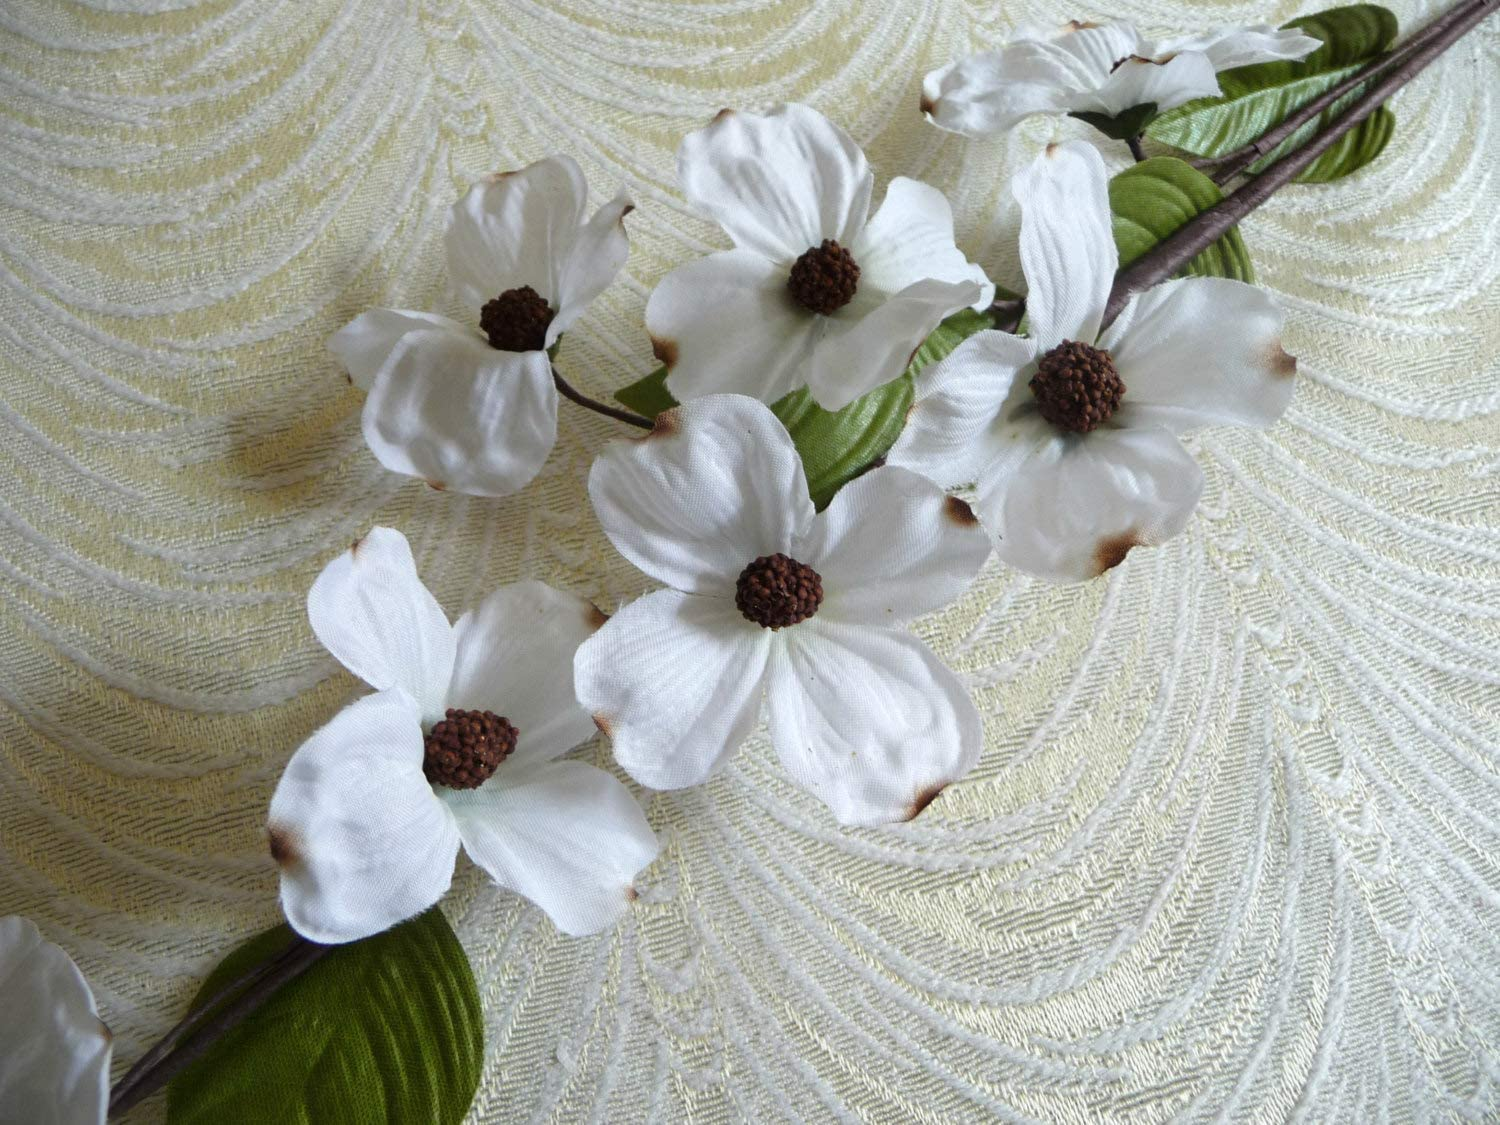 White Silk Dogwood Flowers Spray of 8 Blossoms on Twig NOS for Millinery Bouquets Weddings Hair Crowns Home Decor Crafts